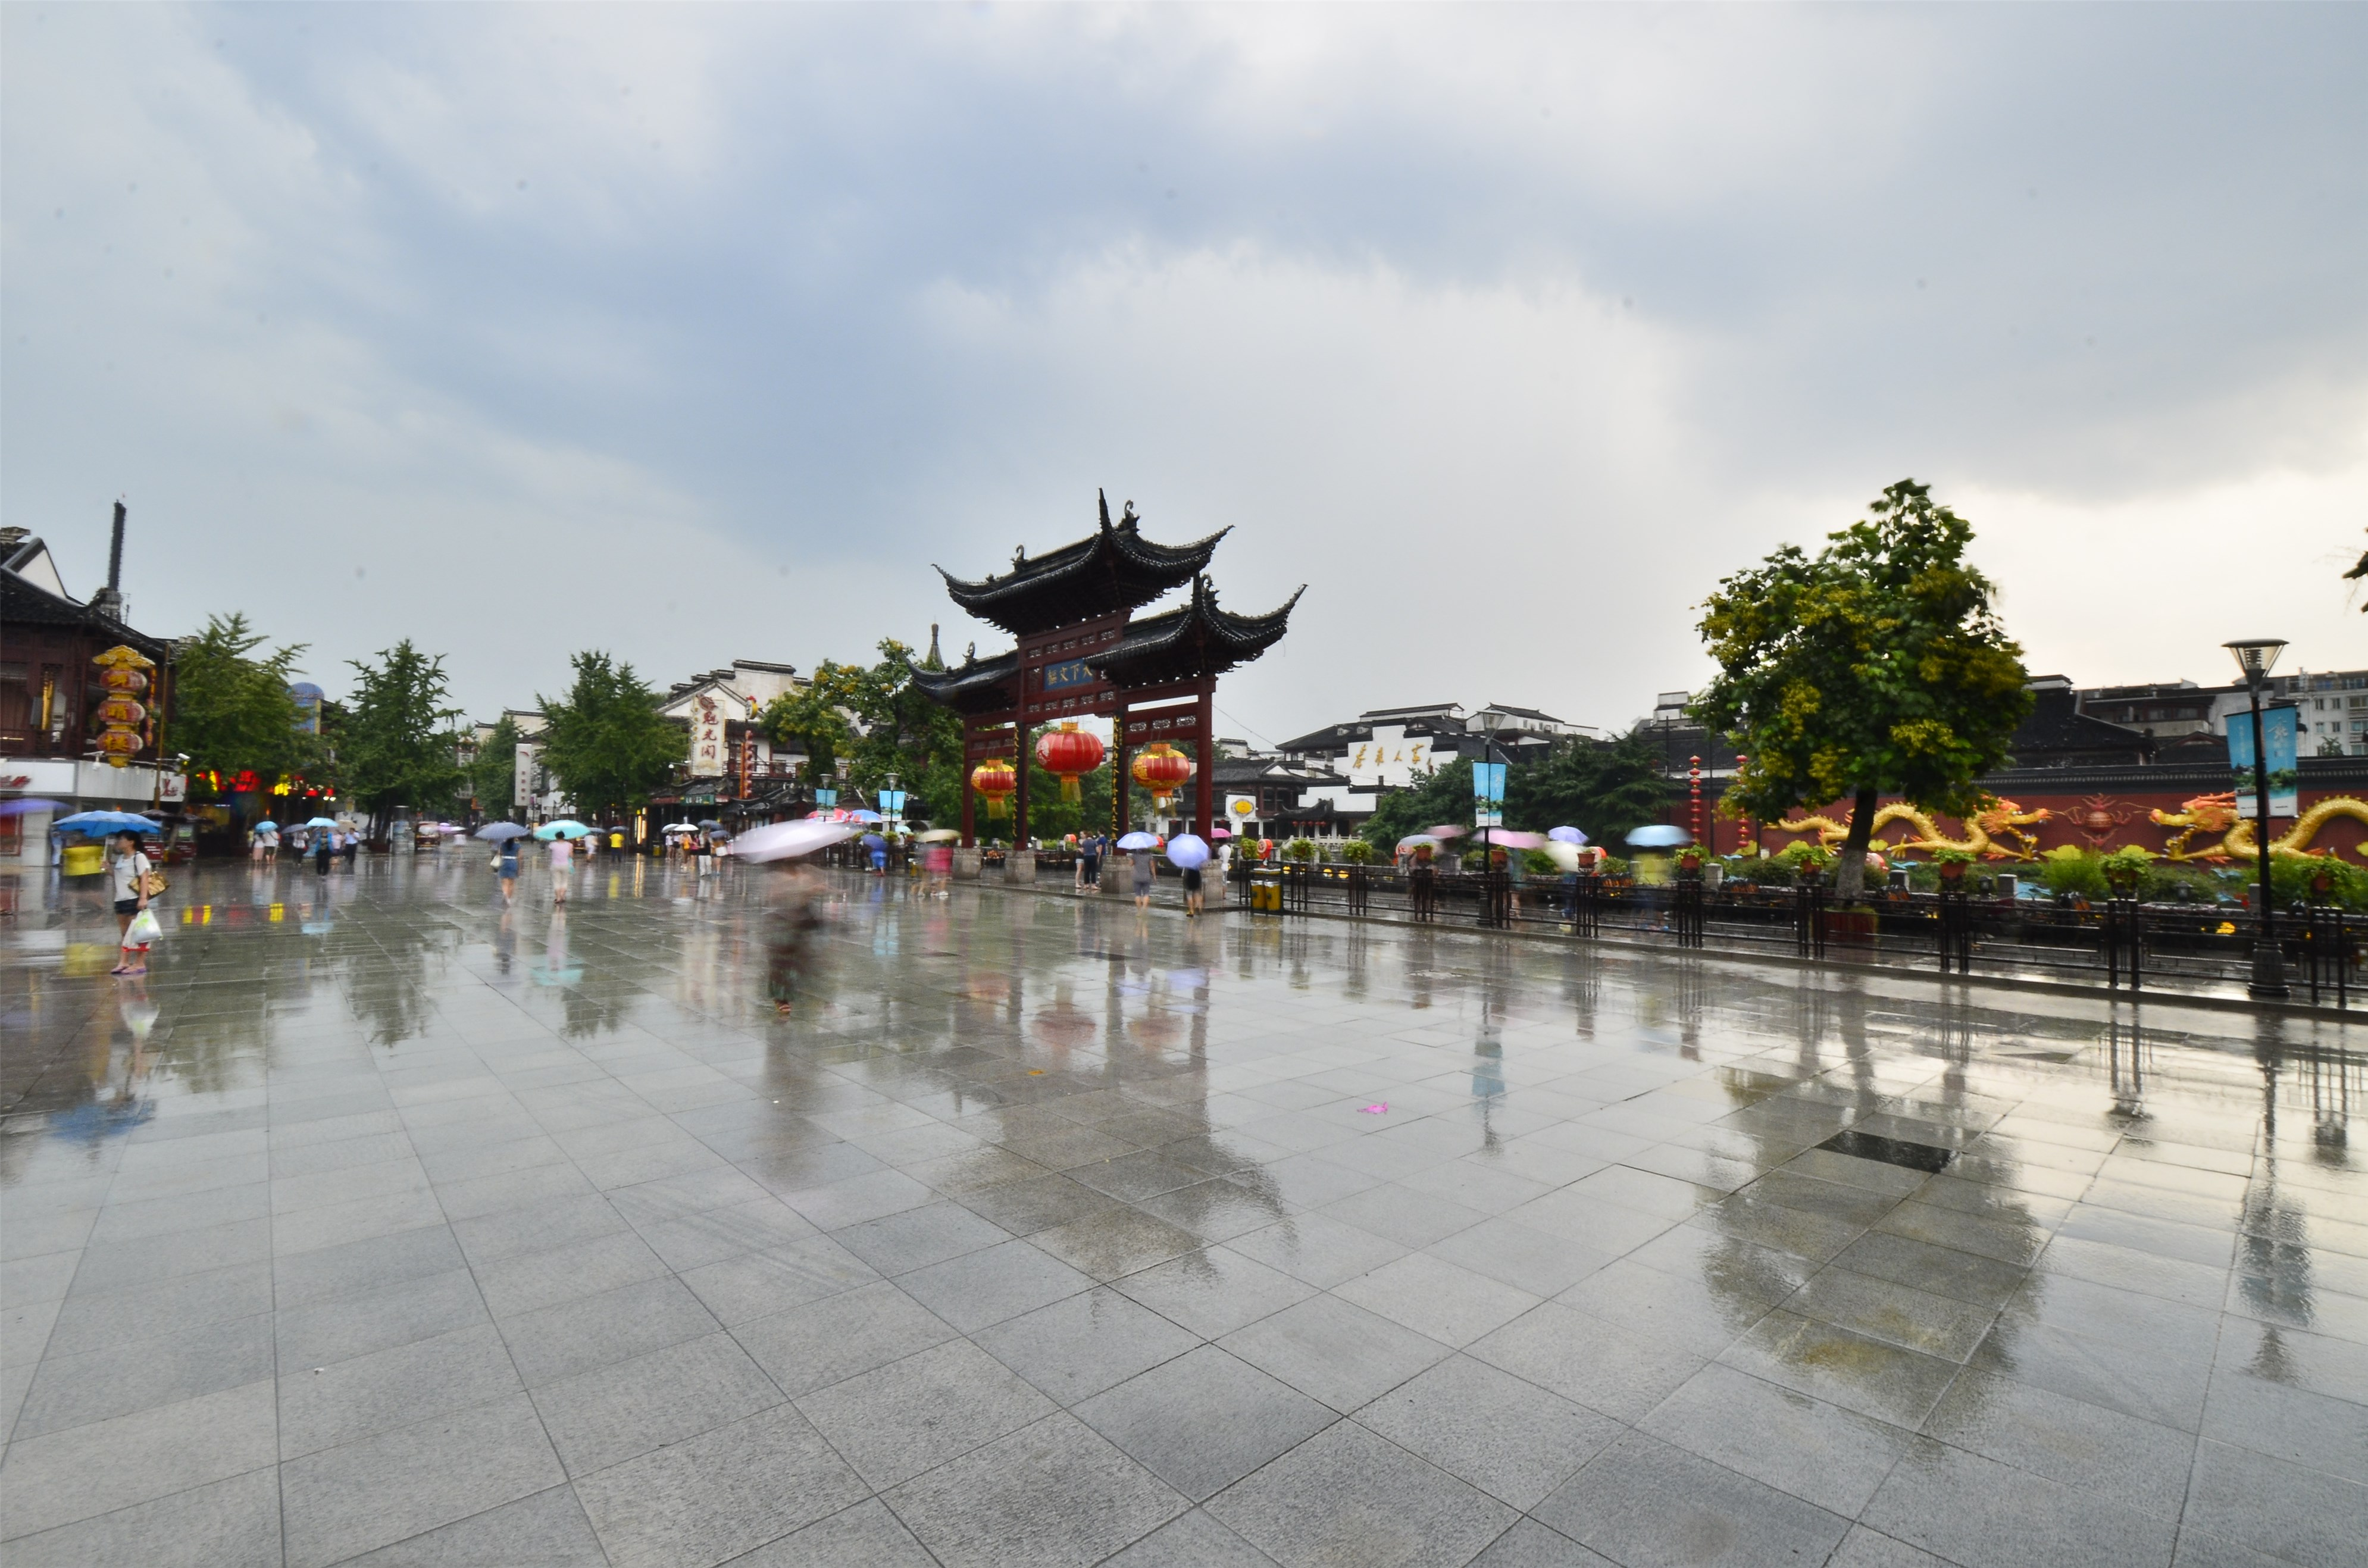 Nanjing: A Glance at the Ancient Oriental Capital With Unique Charm